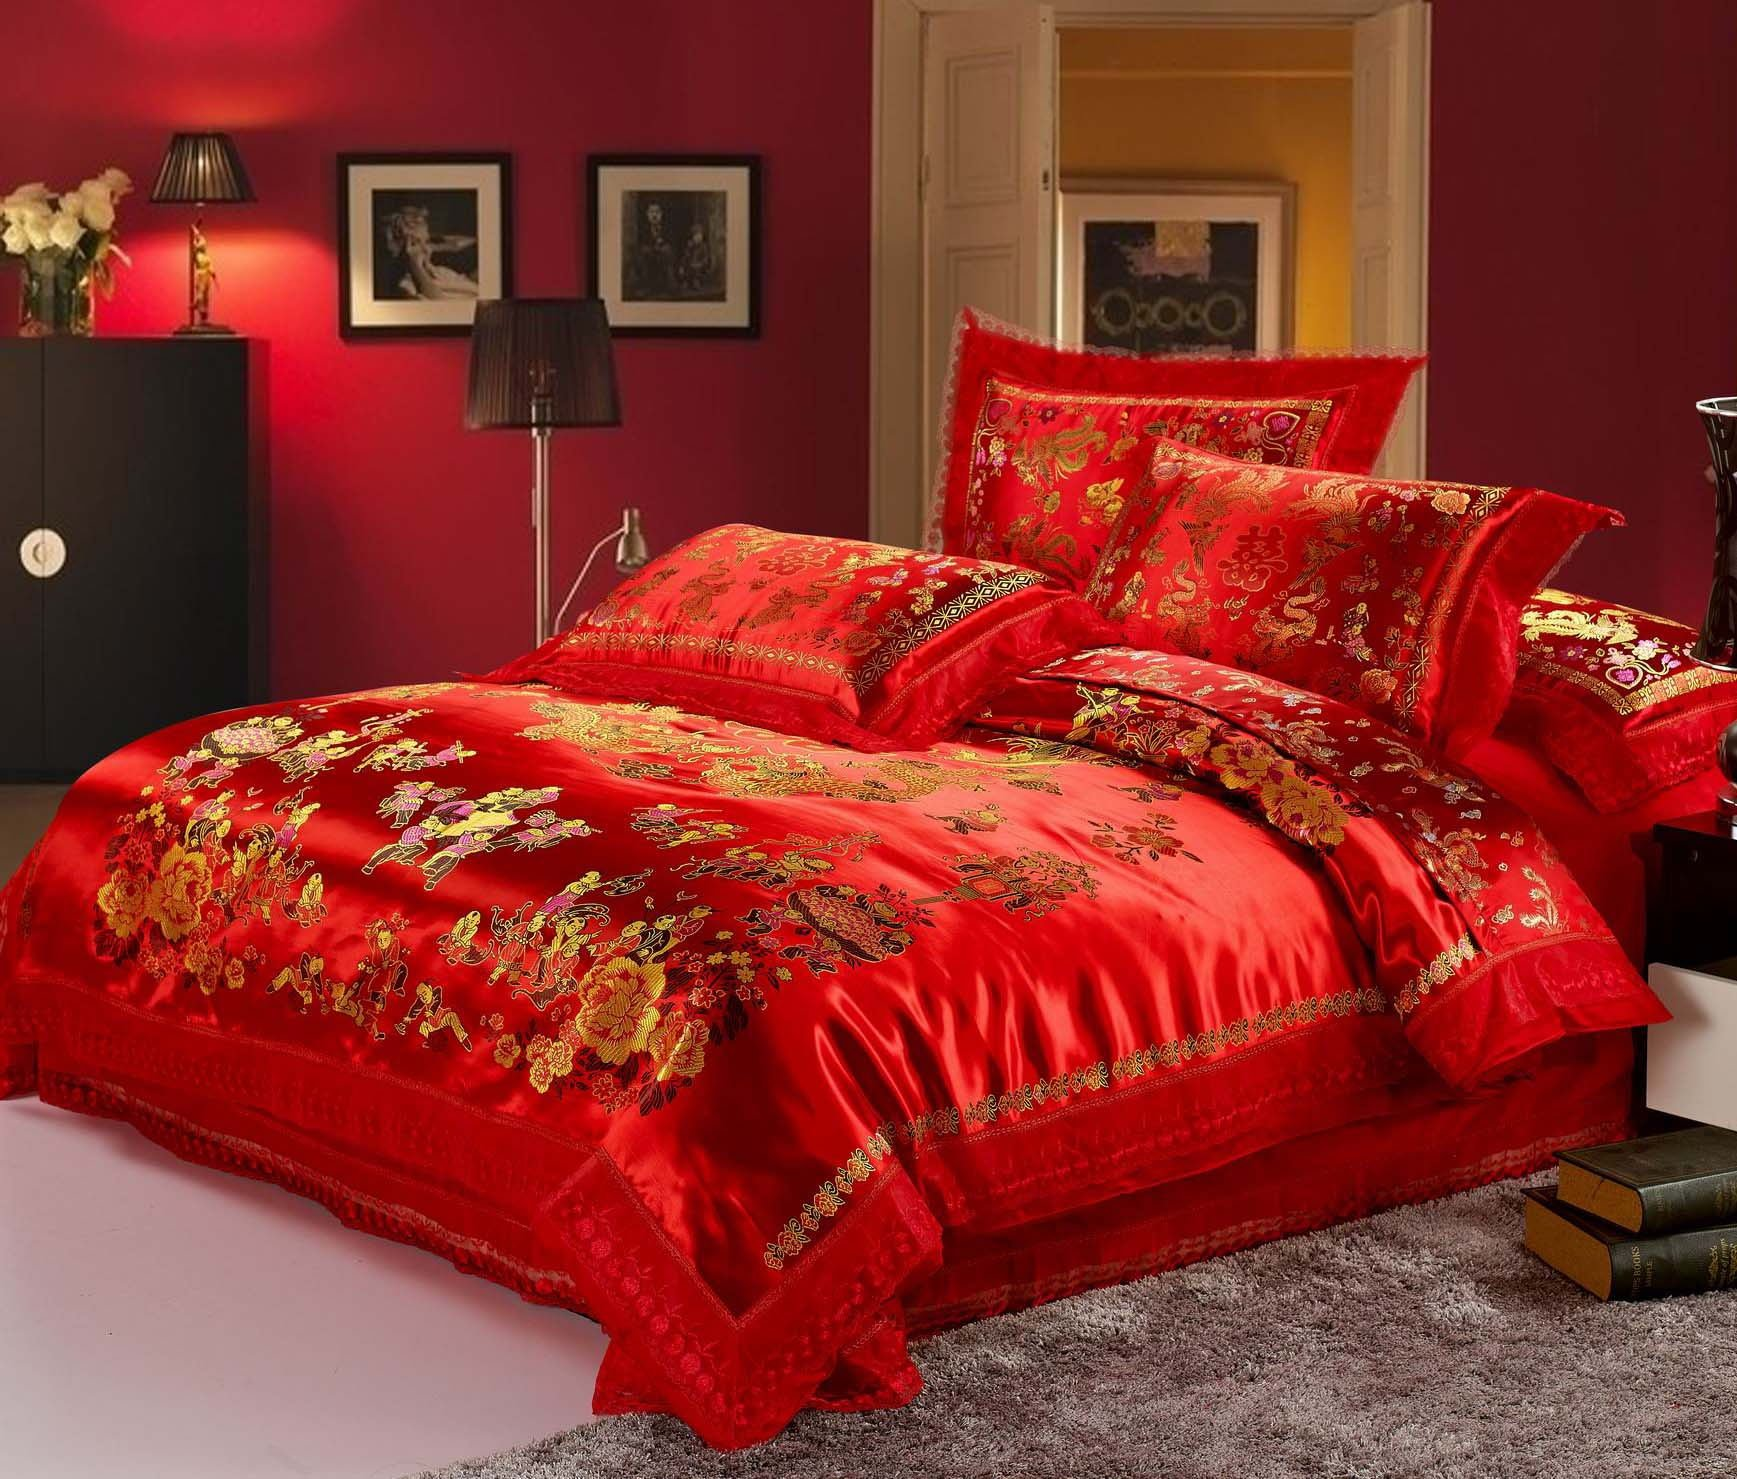 HNNSI 4pcs Wedding Bedding Sets Queen Size, Chinese Dragon and Phoenix Satin Lace Duvet Cover Set with Cotton Flat Sheet, Quit/Comforter Cover Sets, RED Bedding Sets (Queen, style4) by HNNSI